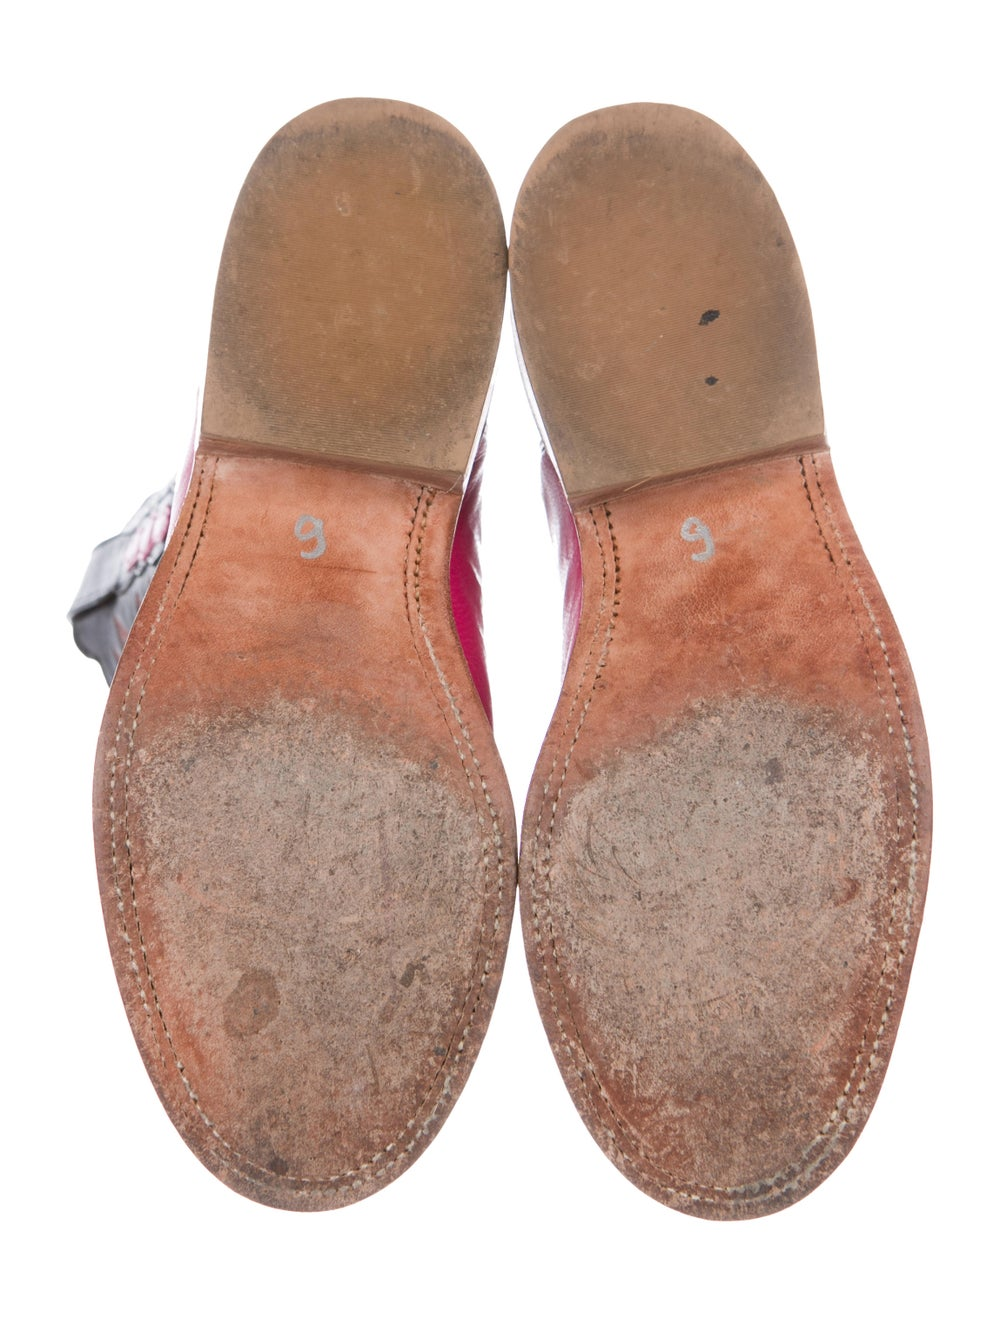 Lucchese Leather Cowboy Boots Pink - image 5